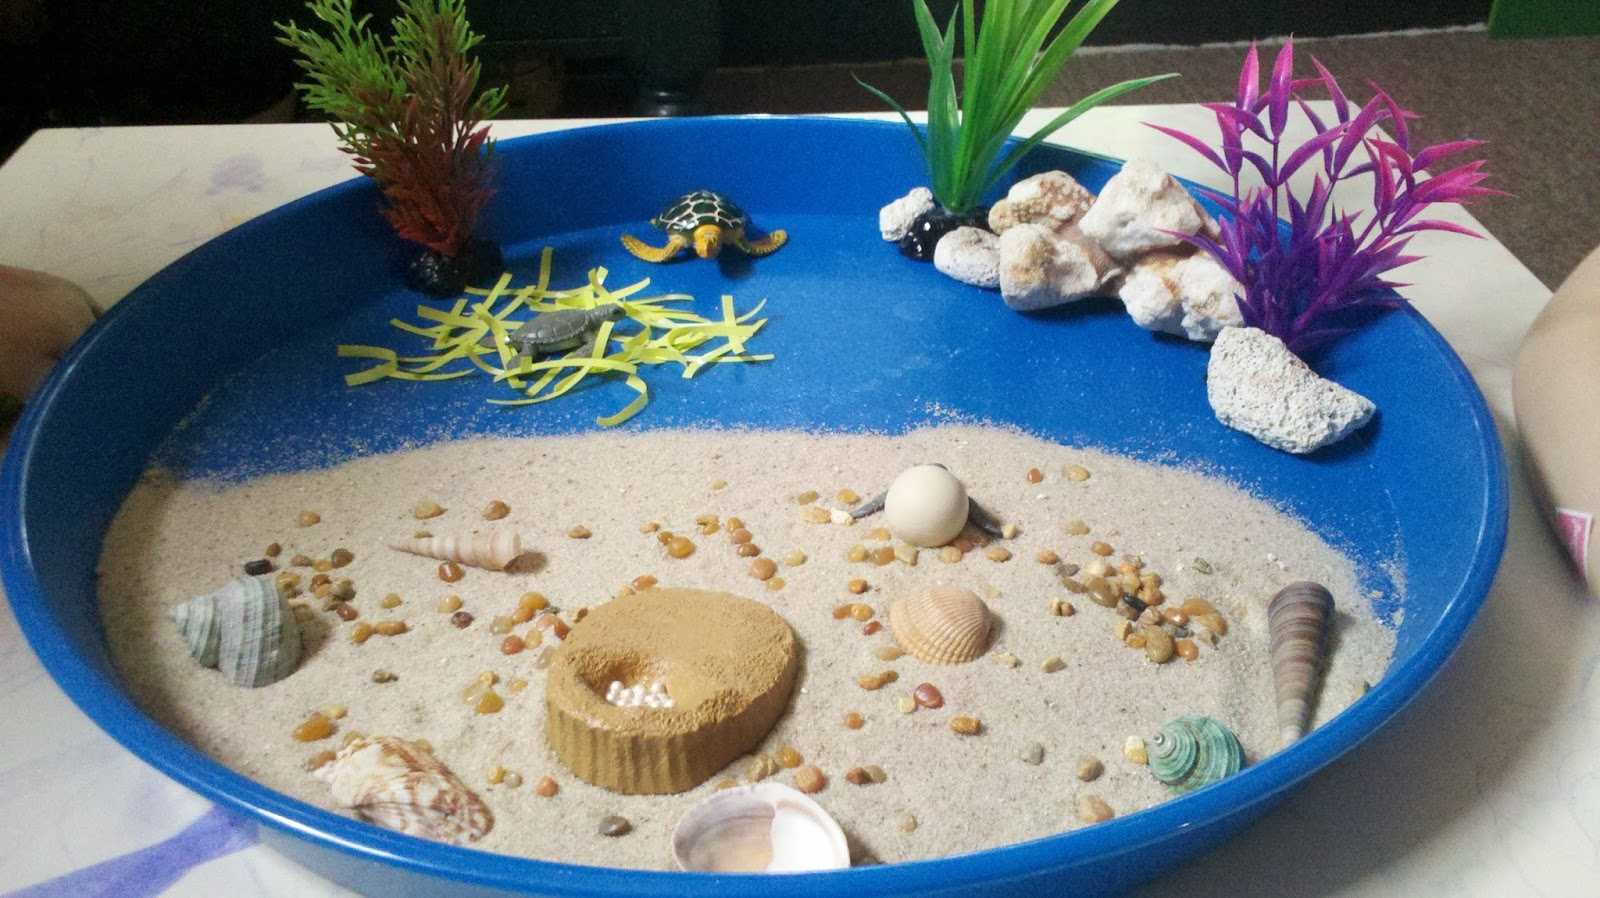 Munchkin and Bean: The Life Cycle of a Green Sea Turtle